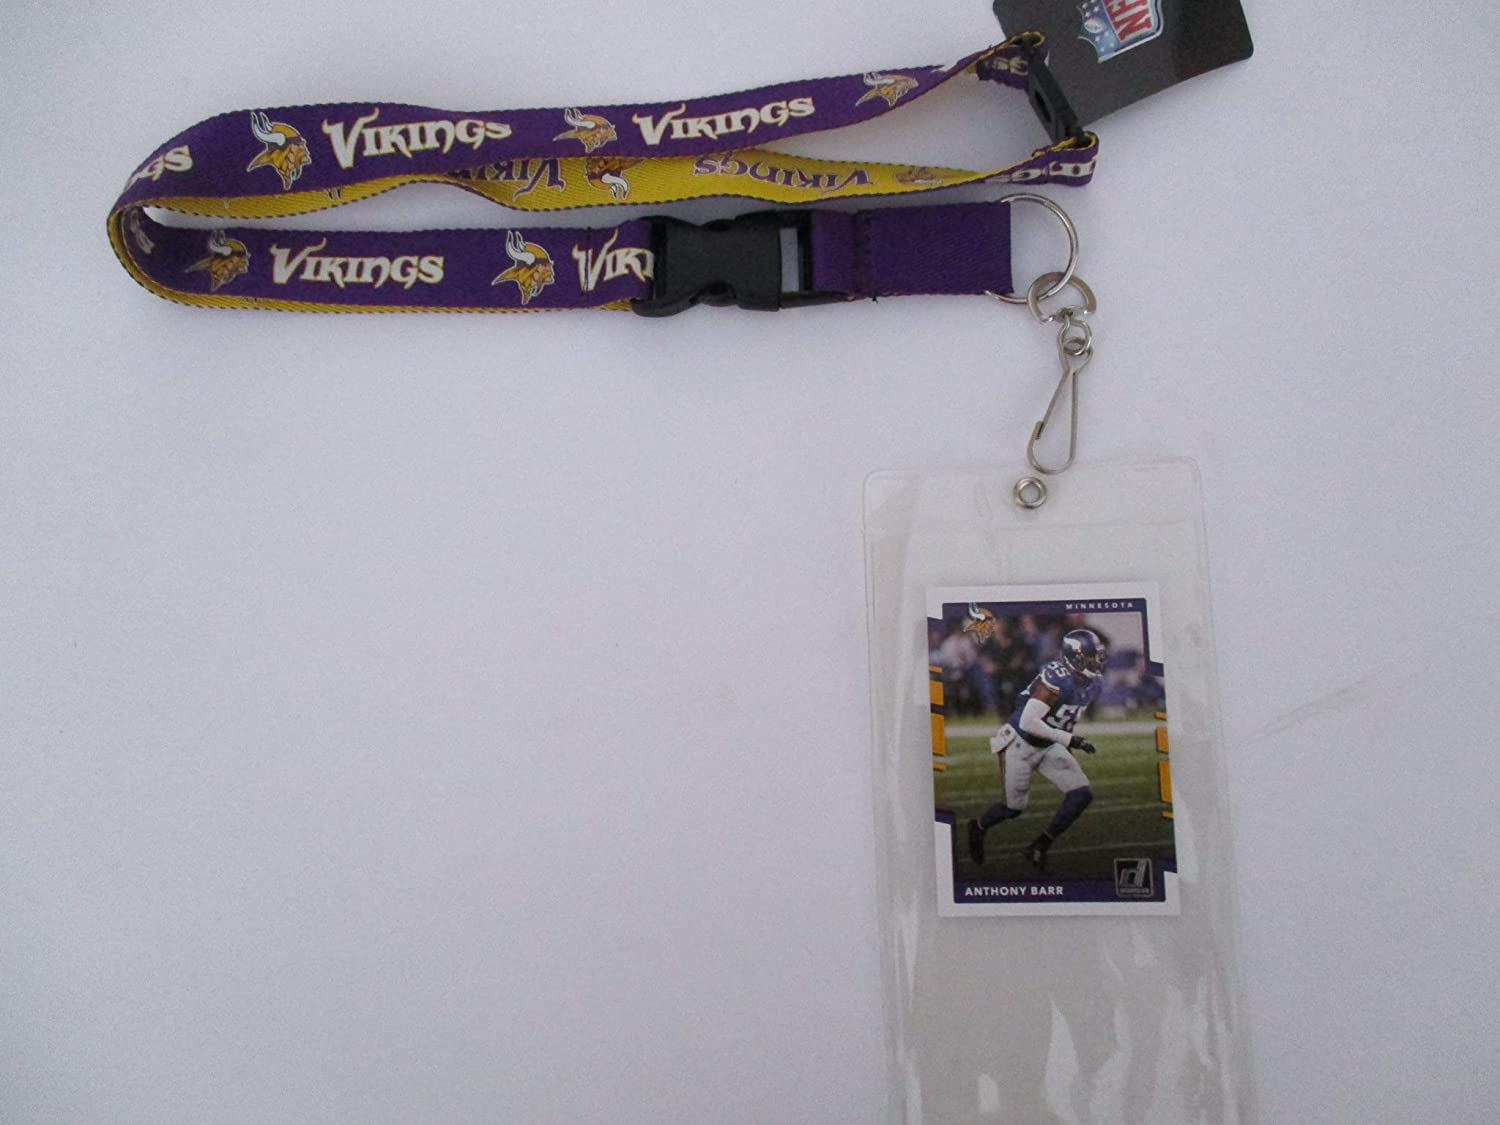 MINNESOTA VIKINGS PURPLE & GOLD TWO TONE LANYARD WITH TICKET HOLDER PLUS COLLECTIBLE PLAYER CARD